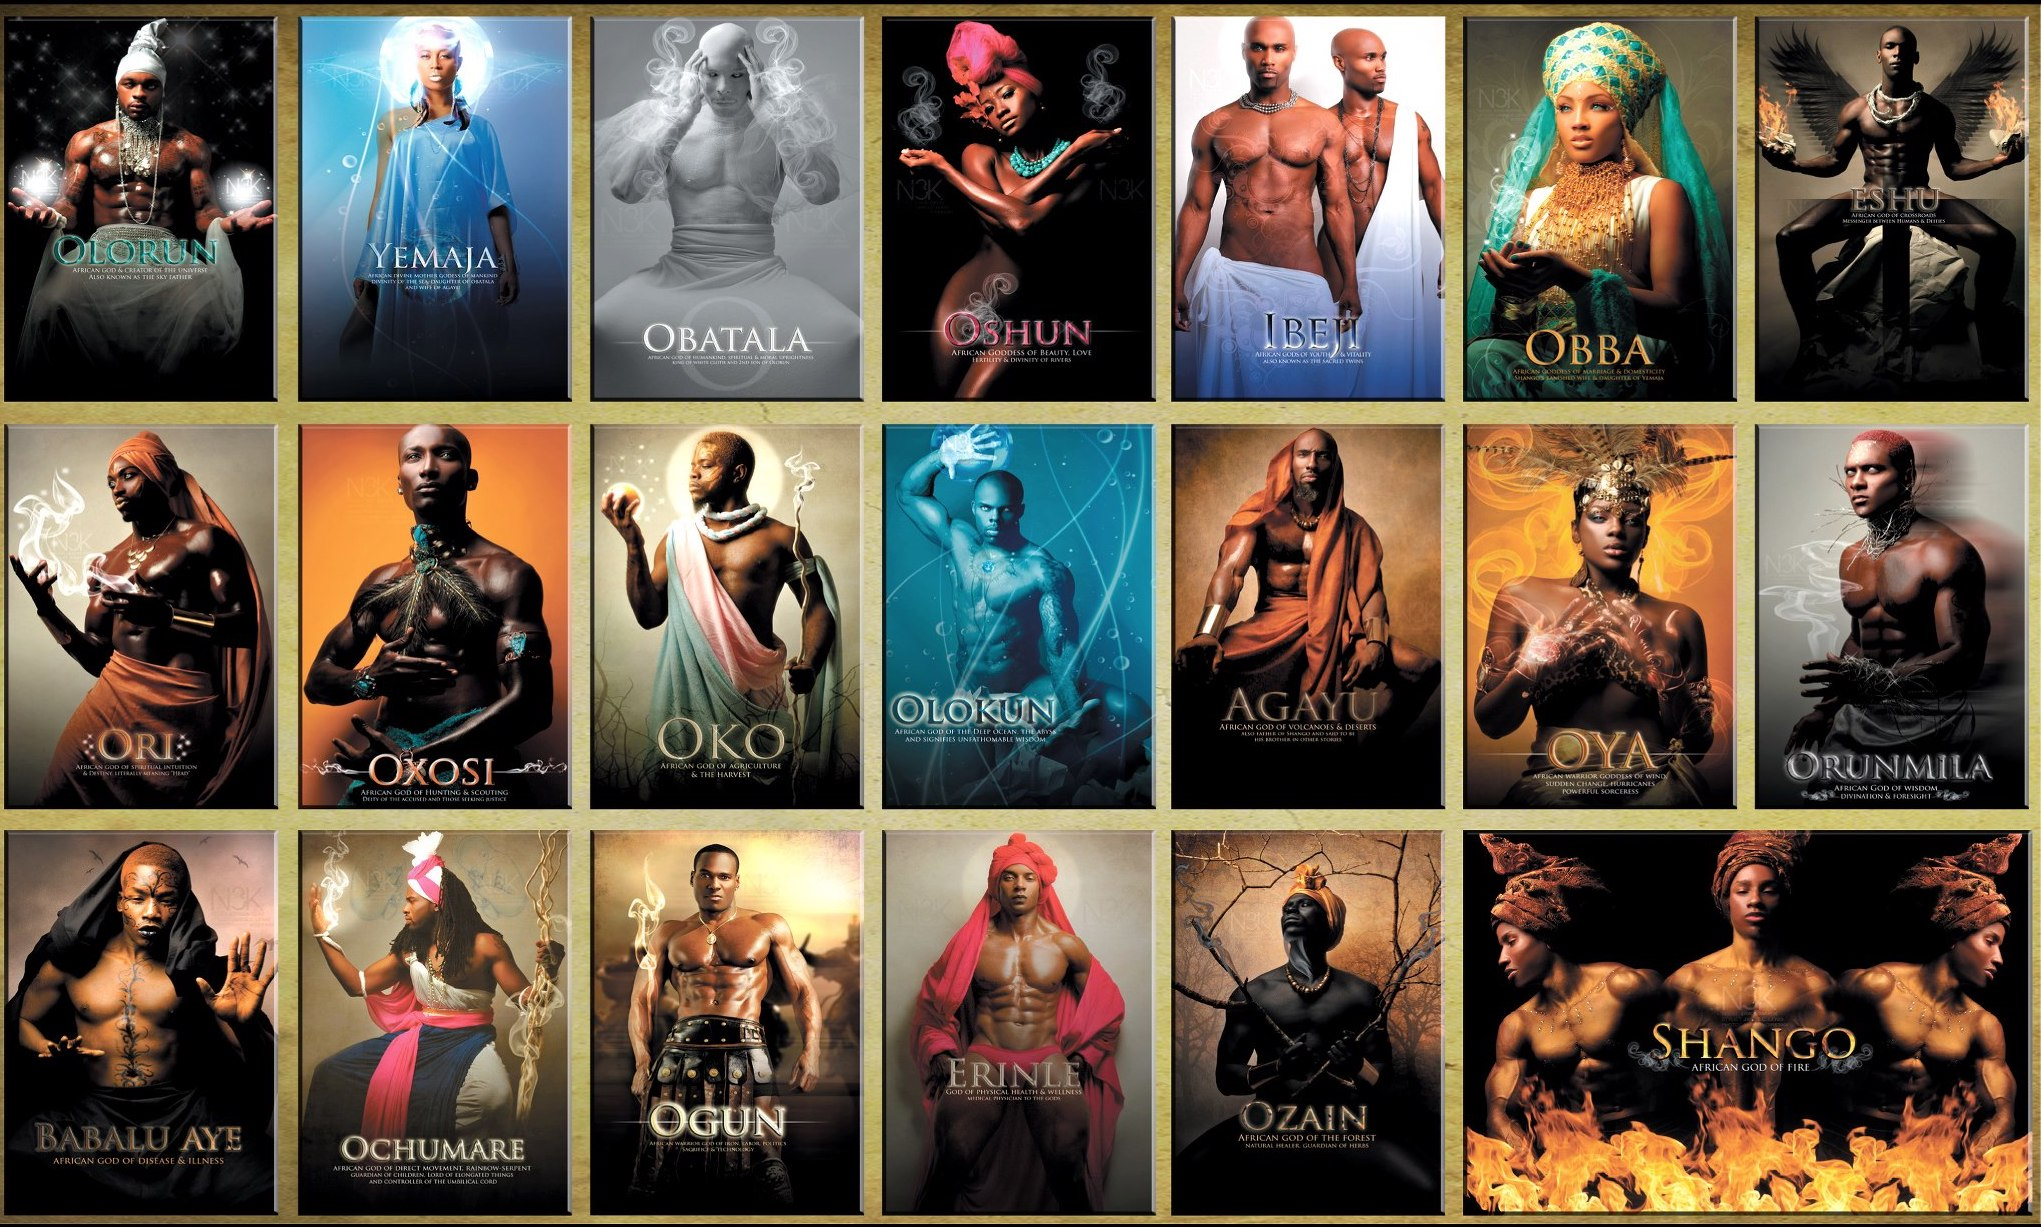 The Truth About The Ancient African Yoruba Religion |The Pan-African Alliance